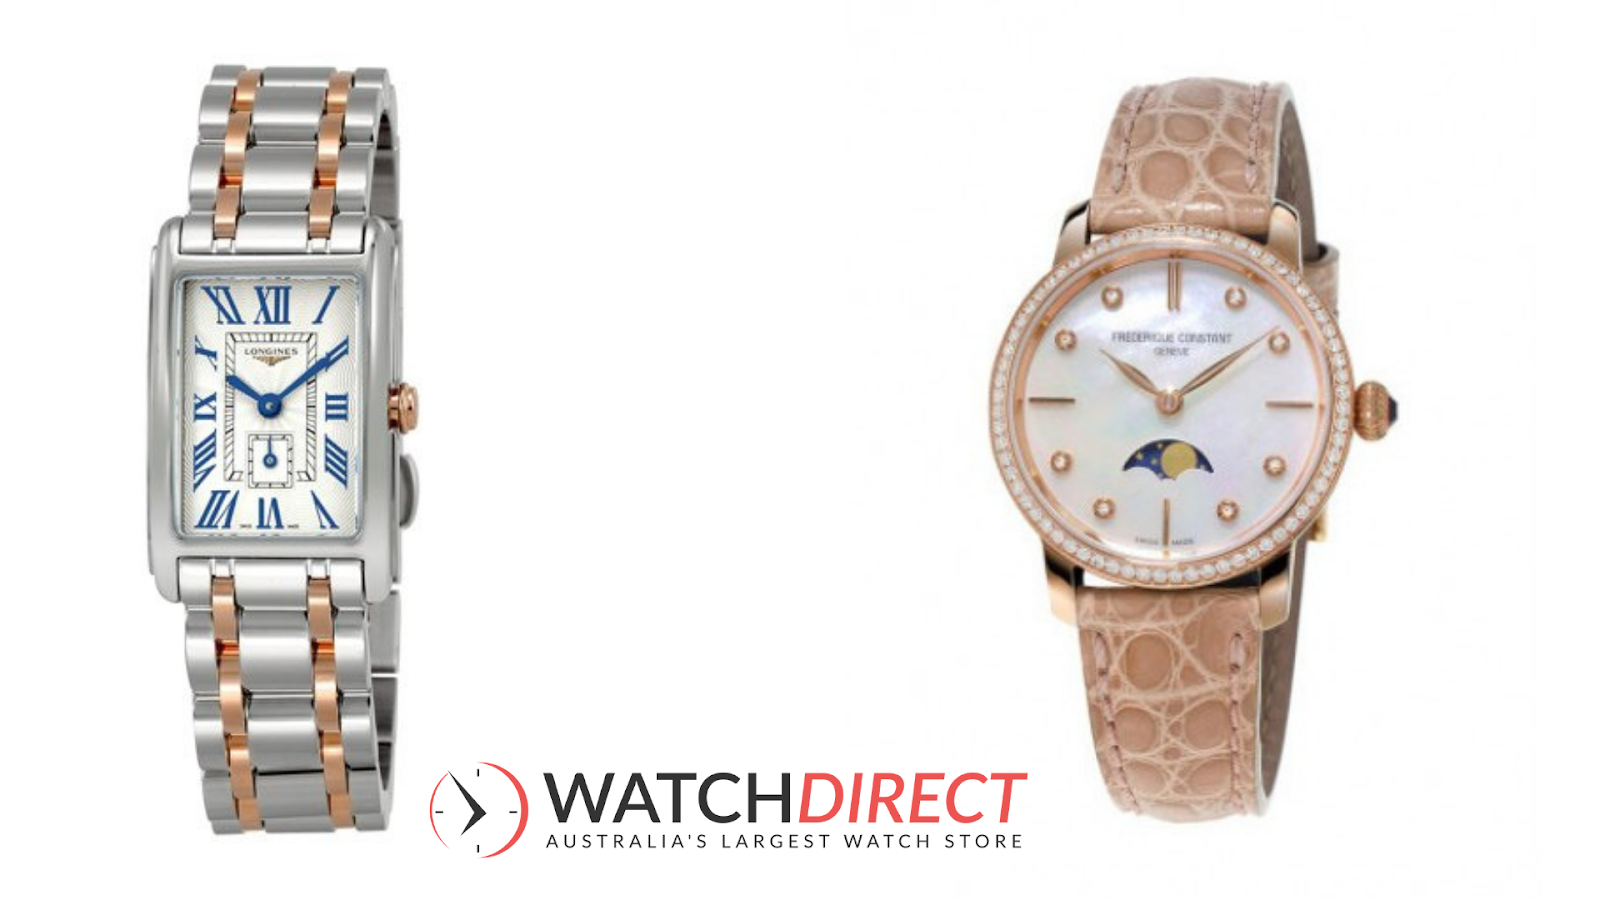 Frederique Constant Slimline Moonphase Beige Alligator Leather Women's Watch and Longines Dolcevita Silver Dial Women's Watch.